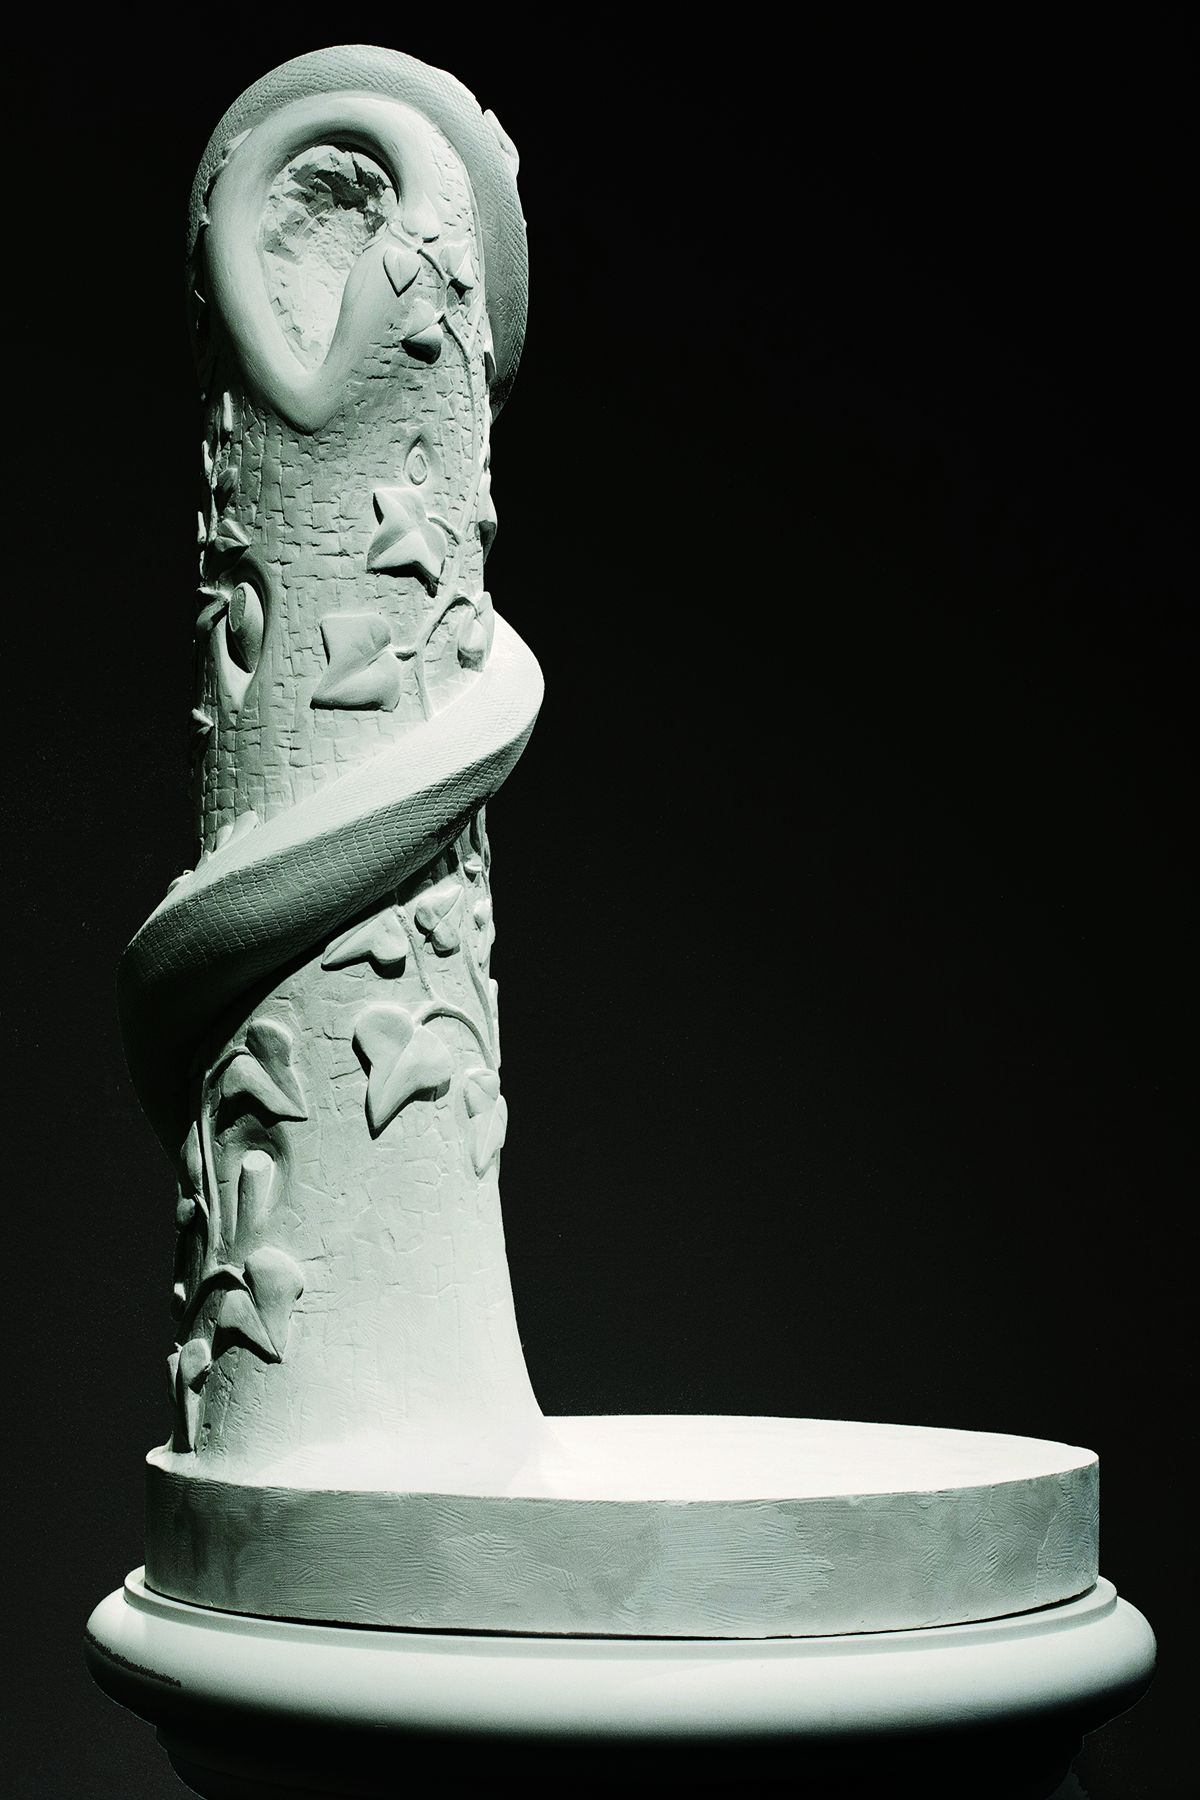 The Stand:Eve Disconsolate, 2013, Plaster, 69 x 26 x 26 in.